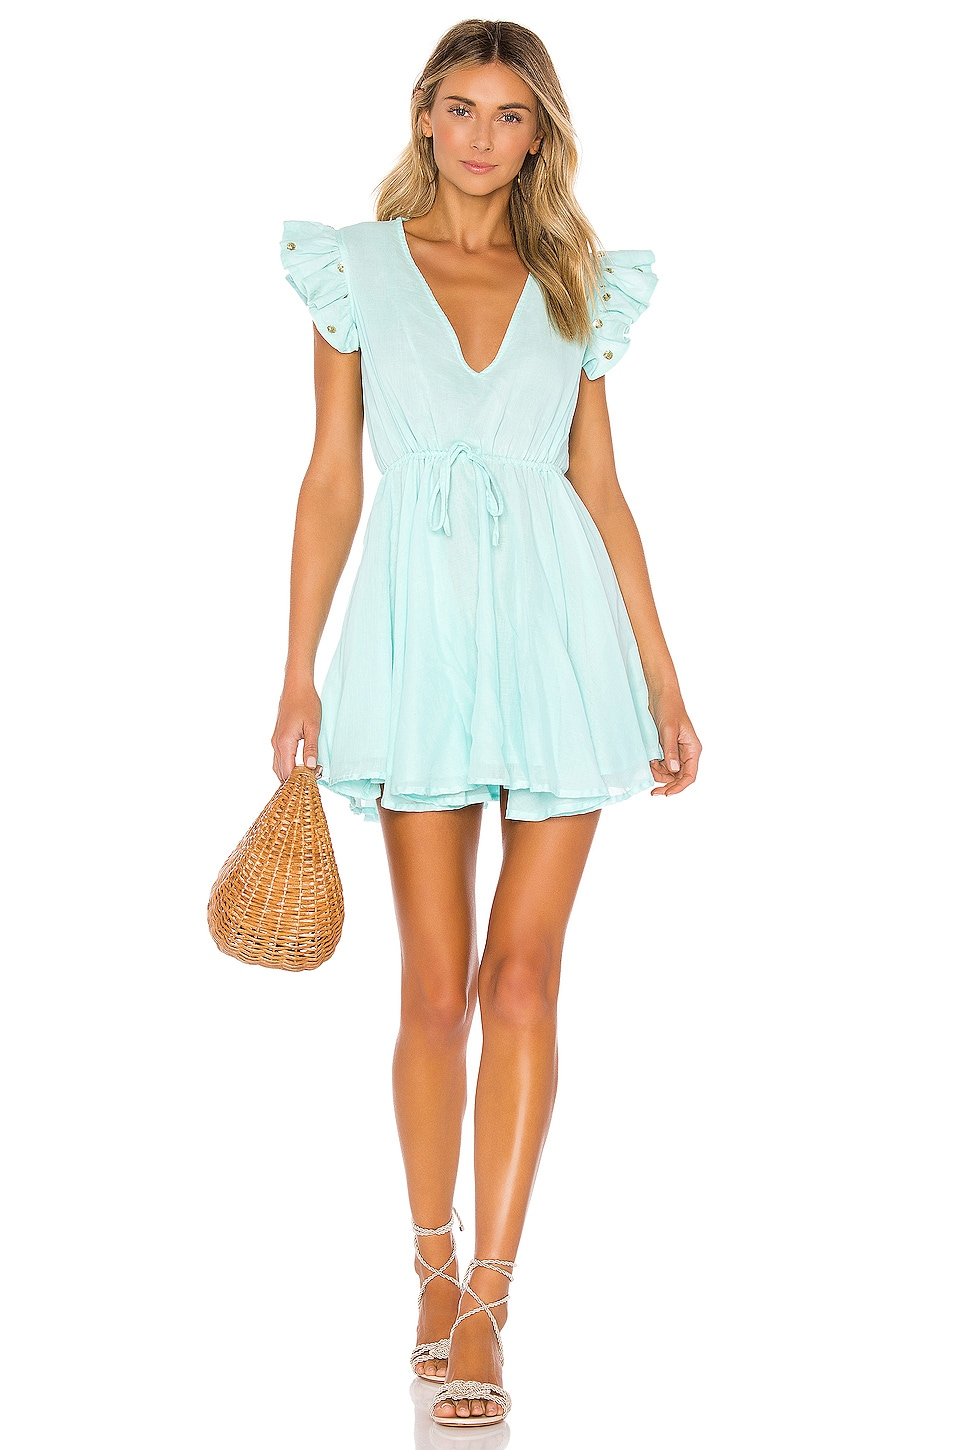 Sundress Viki Dress in Aqua & Jasmine Details